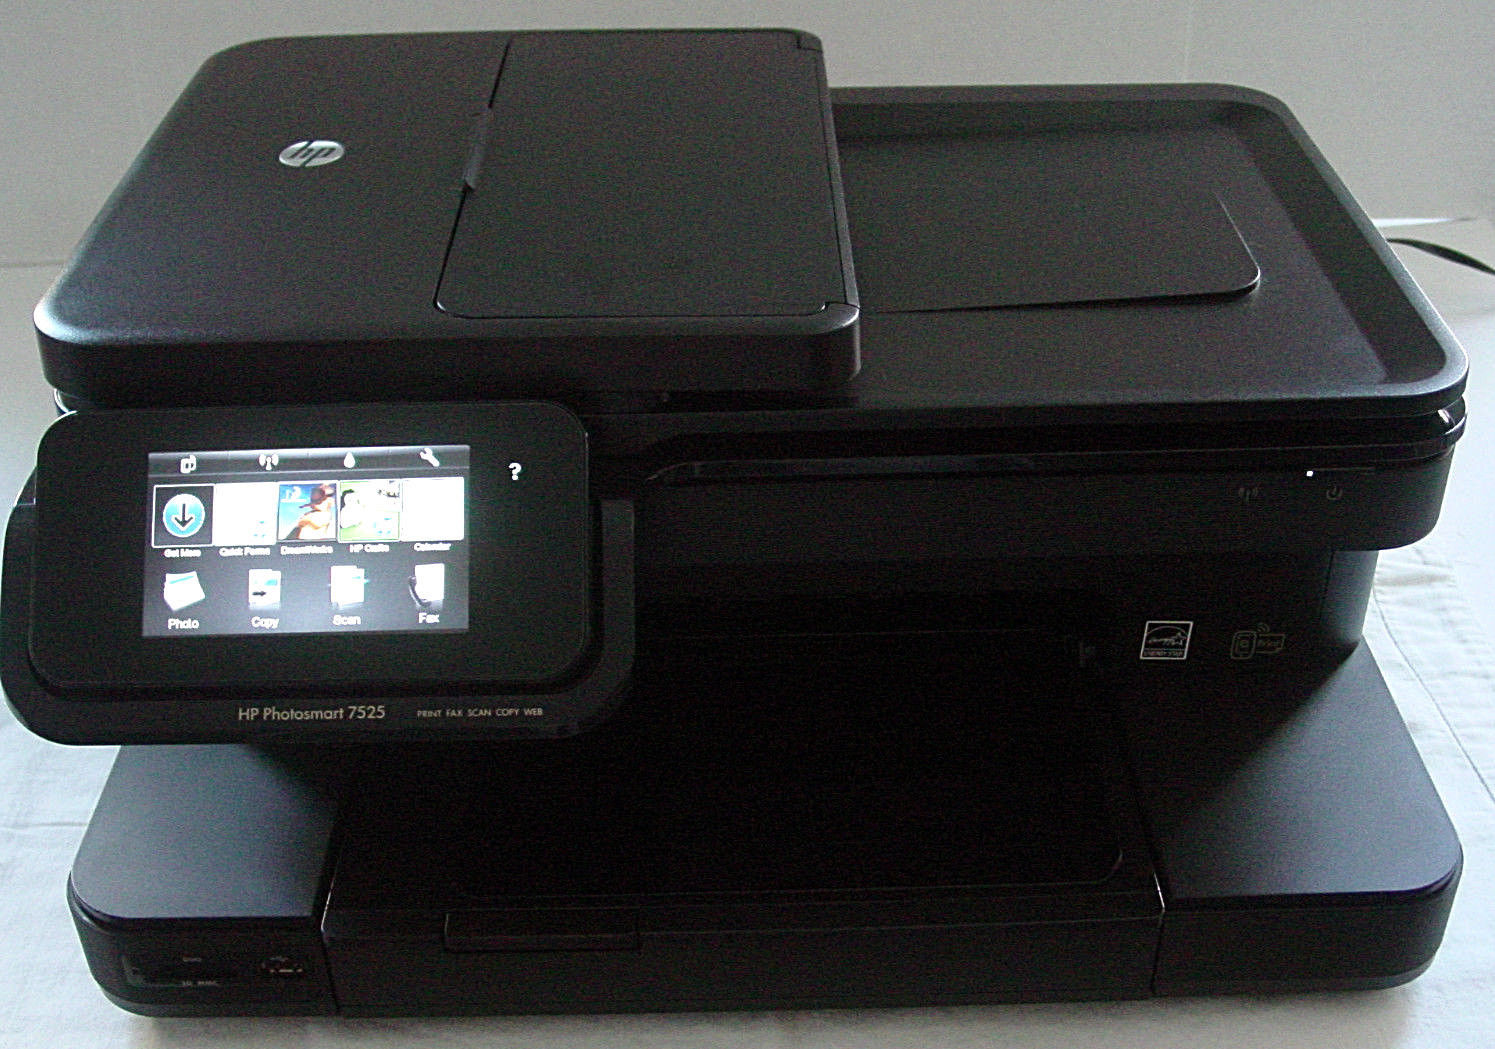 HP Photosmart 7525 All In One Printer BEST OFFERS WELCOMED MAKE AN OFFER!